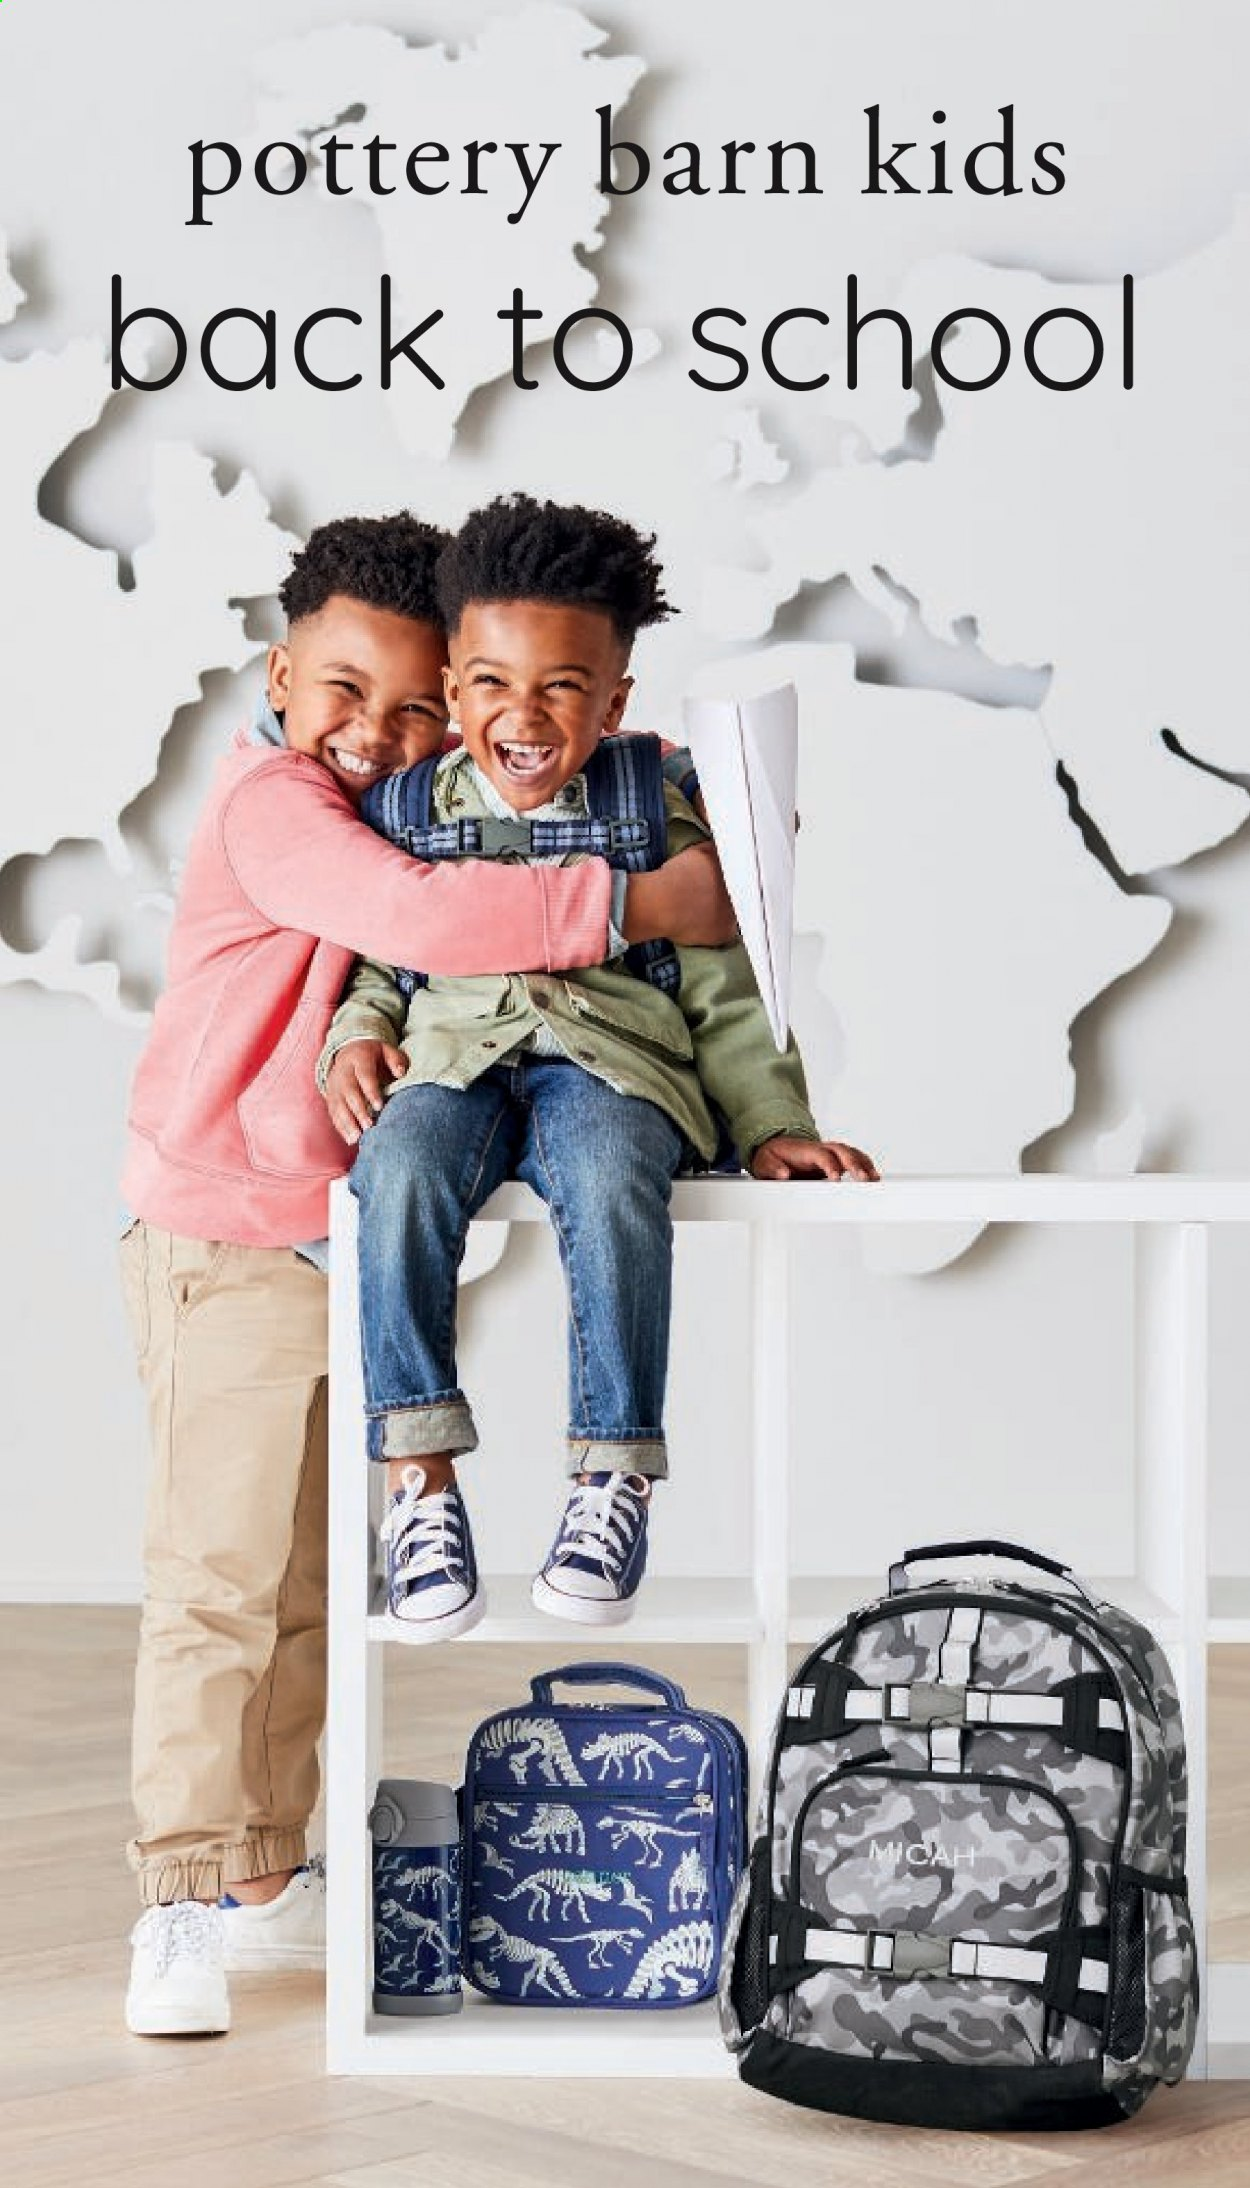 Pottery Barn Ad Kids - Back to School 2021 - Page 1